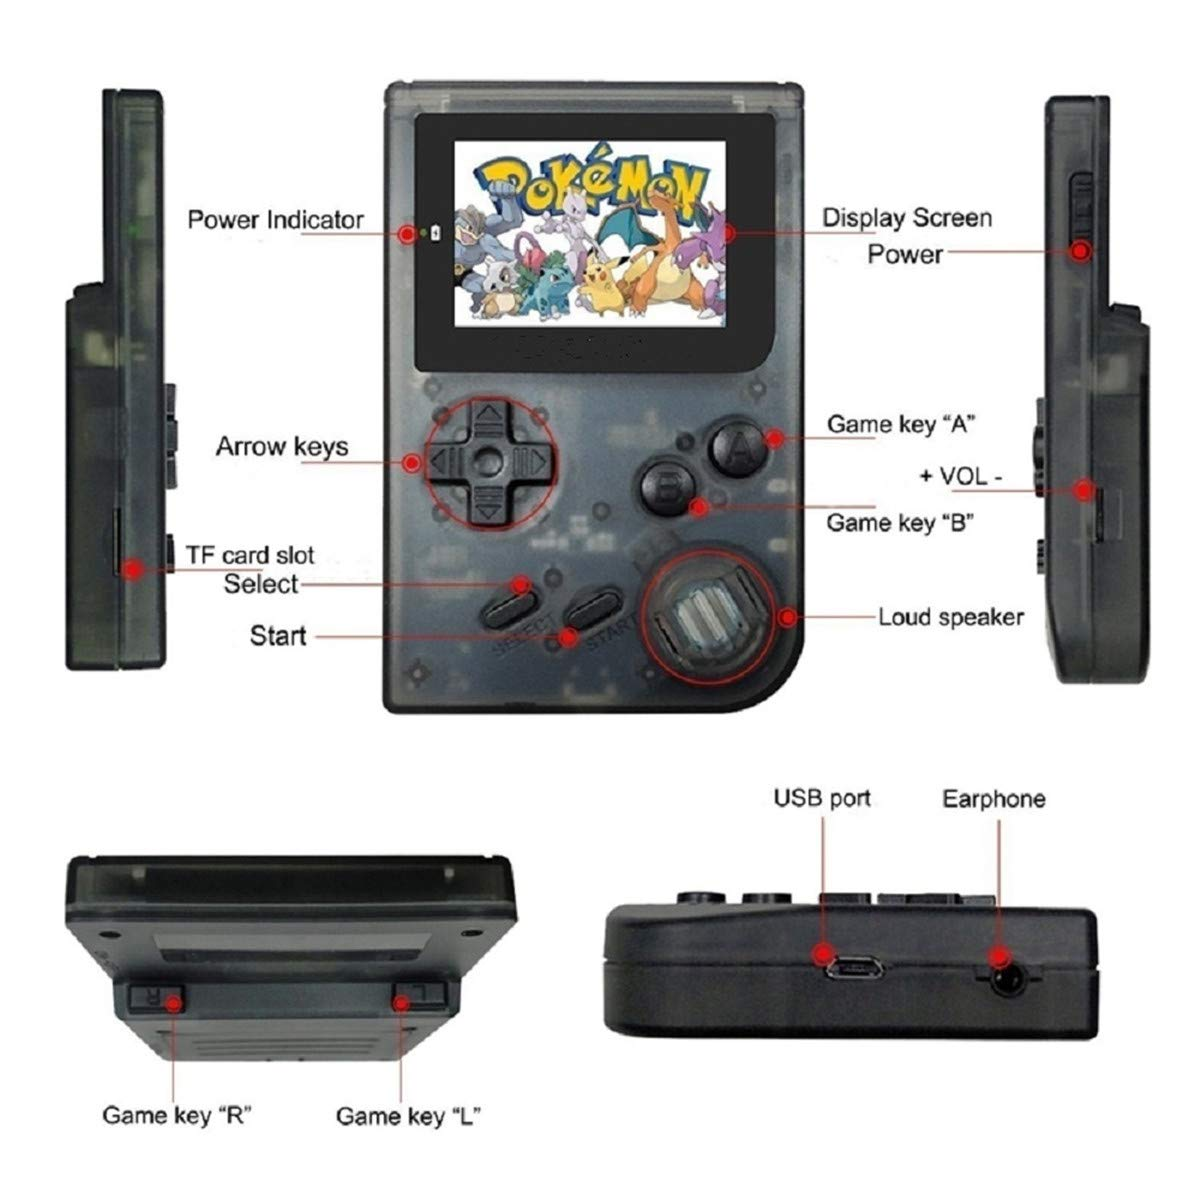 BAORUITENG Handheld Games Consoles , Retro TV Game Console Video Game Console Player 2.0 Inch Game Console with 1169 GBA System Classic Games for Kids Gift (Black) by BAORUITENG (Image #4)